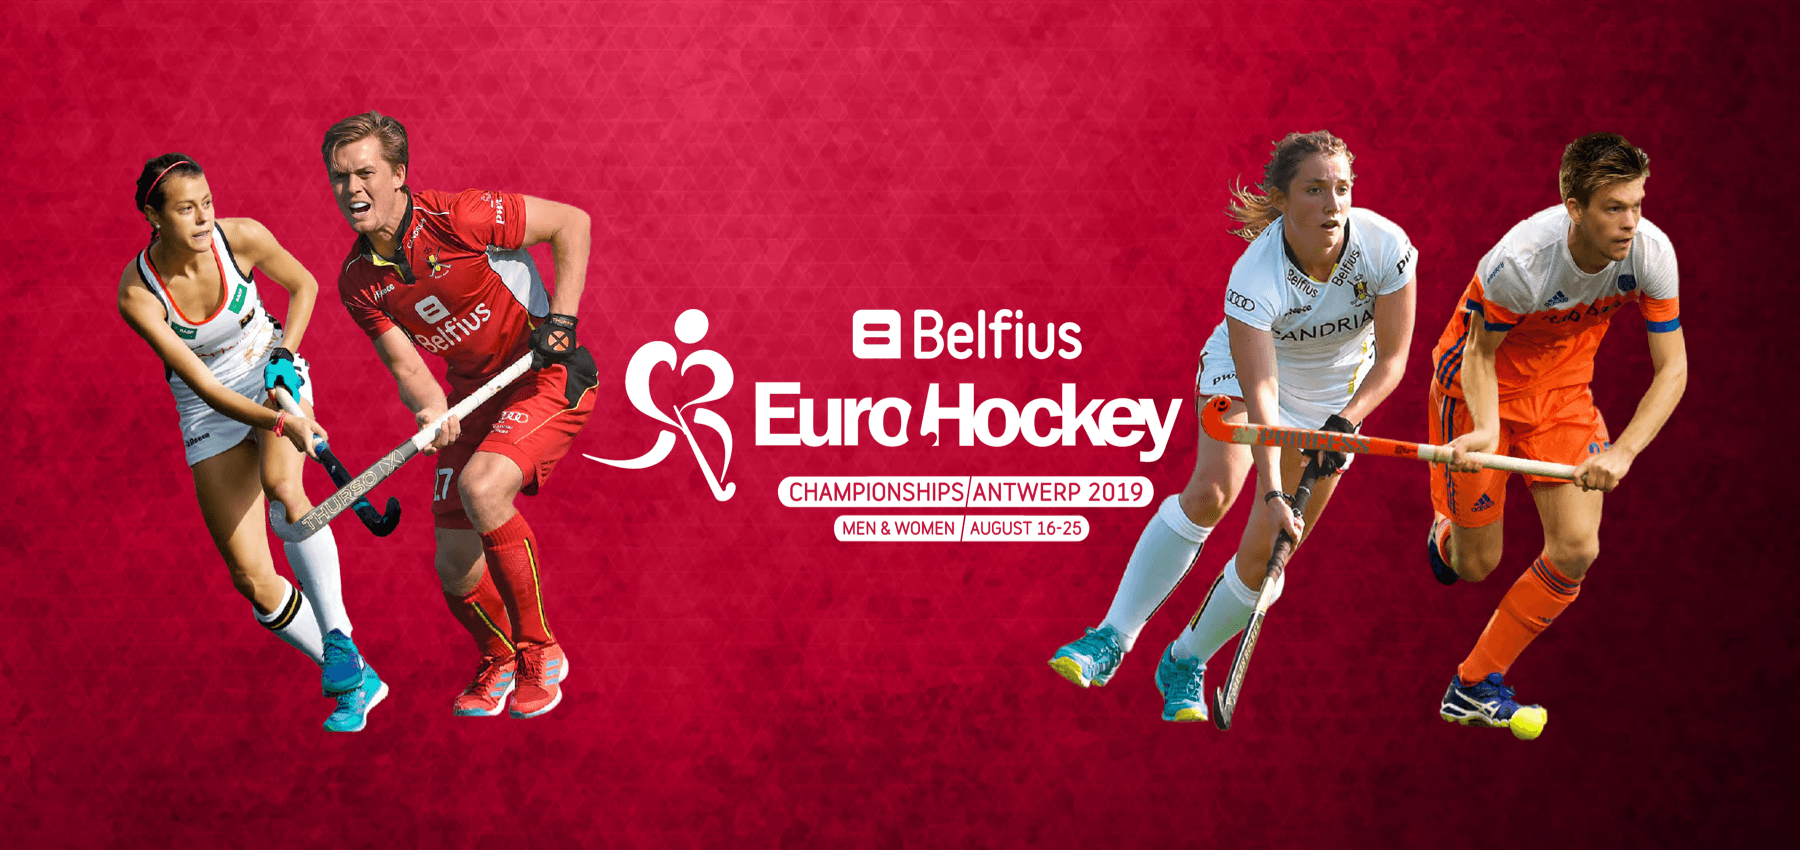 Scorrd European Championships Hockey Men/Women